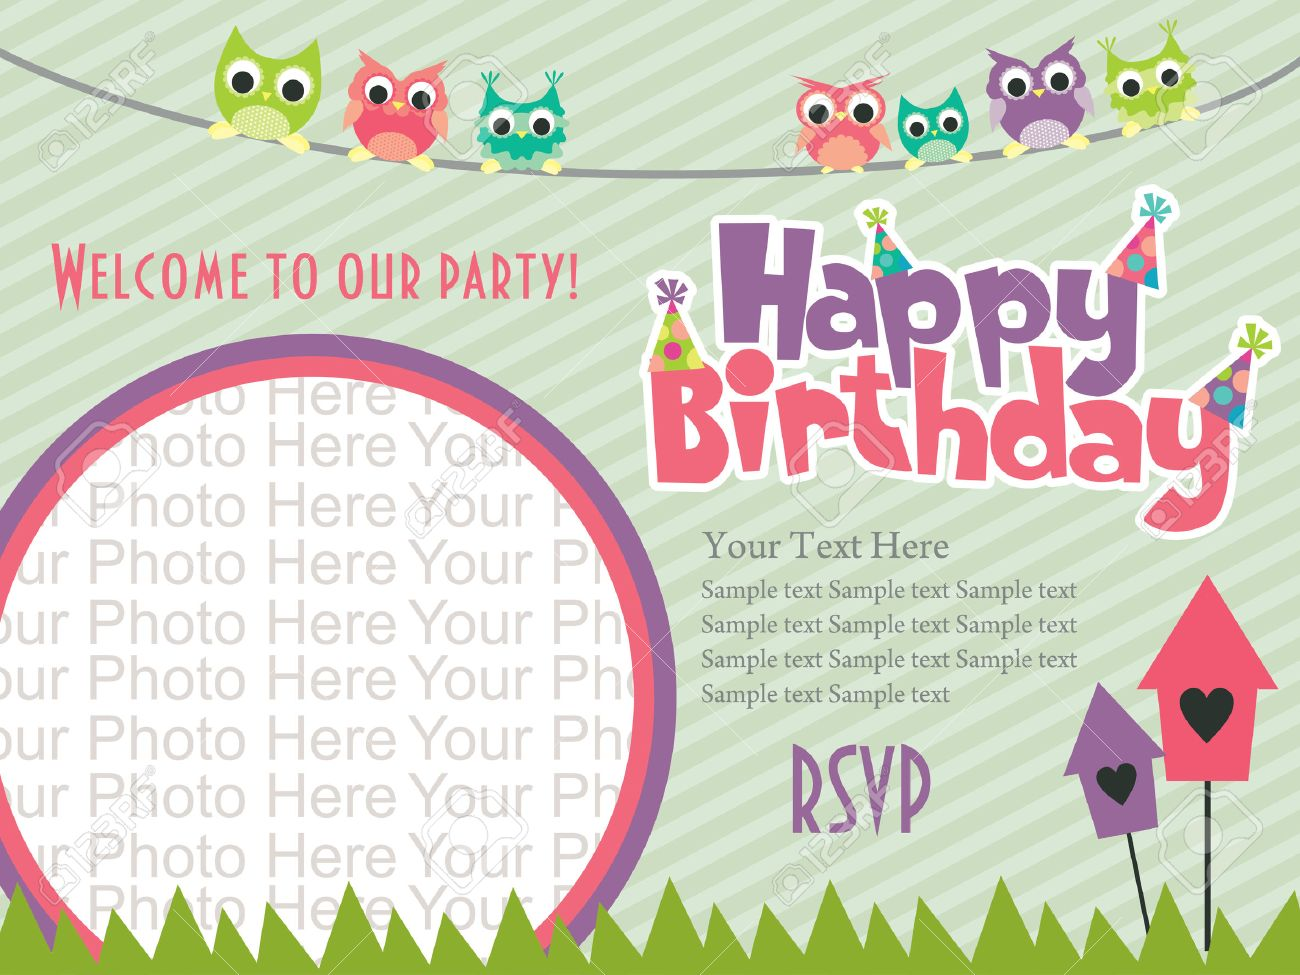 Design a birthday invitation yeniscale design a birthday invitation stopboris